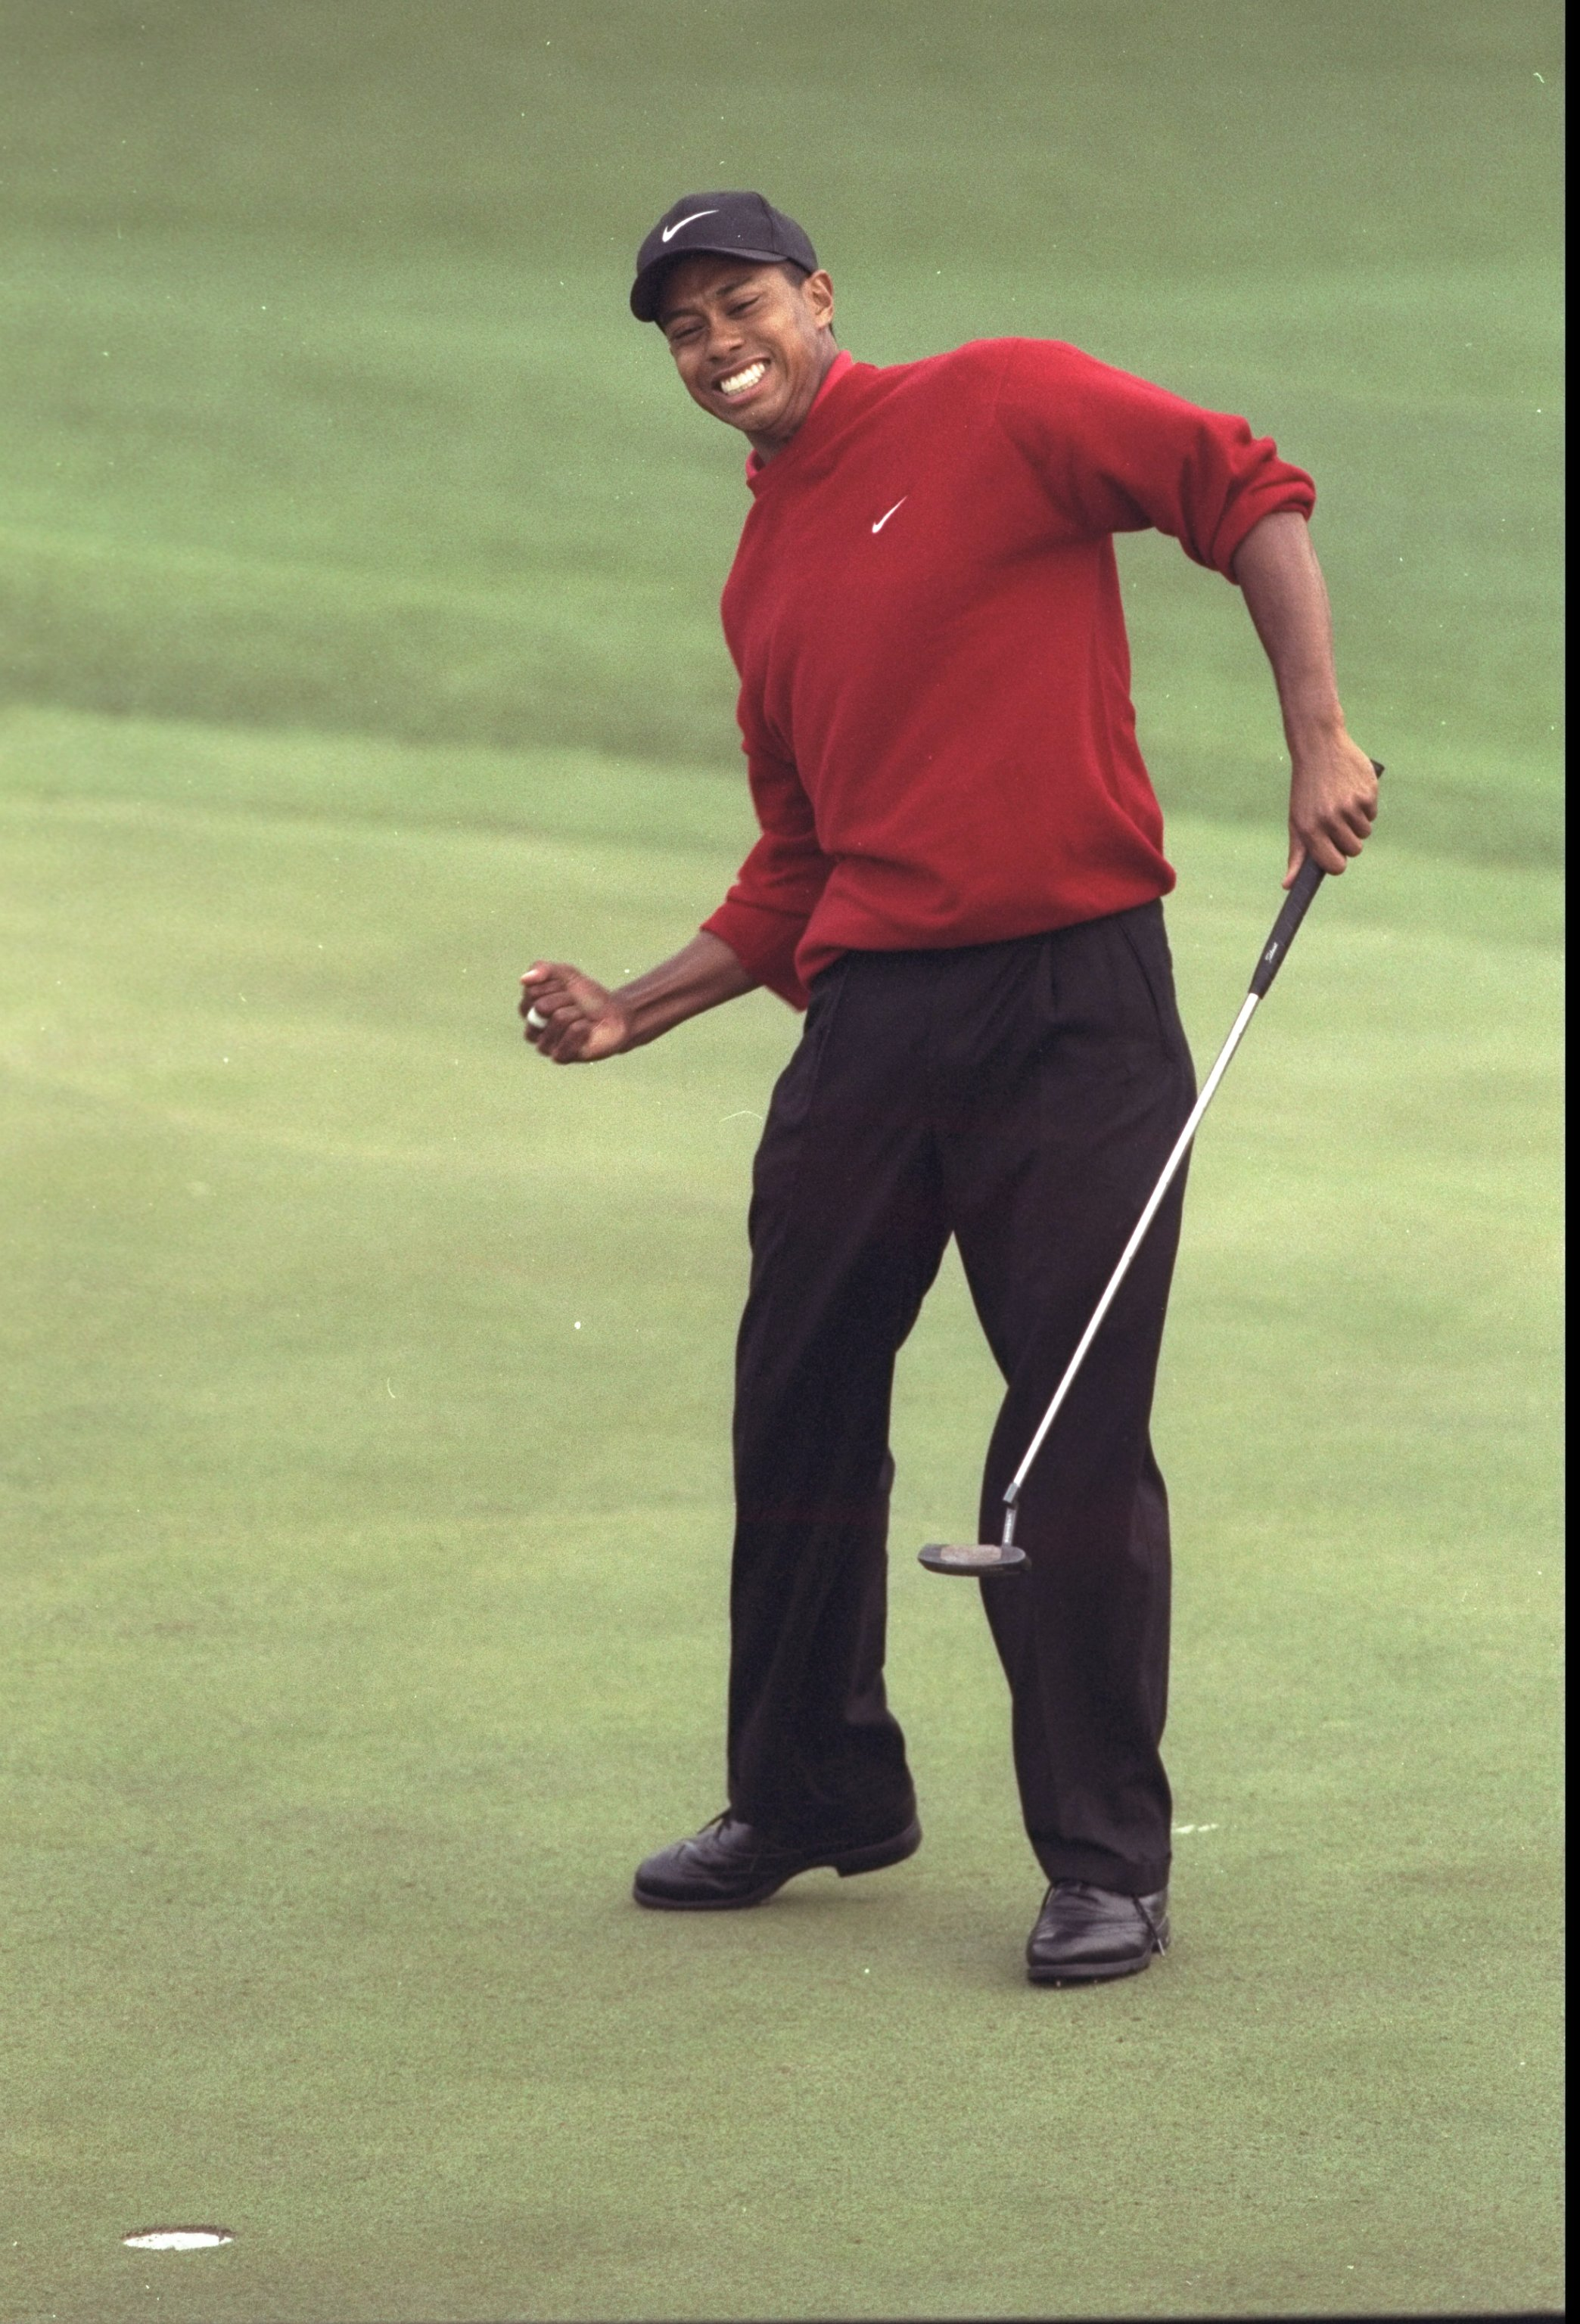 13 Apr 1997: Tiger Woods of the USA celebrates victory in the US Masters at Augusta, Georgia. Woods won the tournament with a record low score of 18 under par. \ Mandatory Credit: David Cannon /Allsport